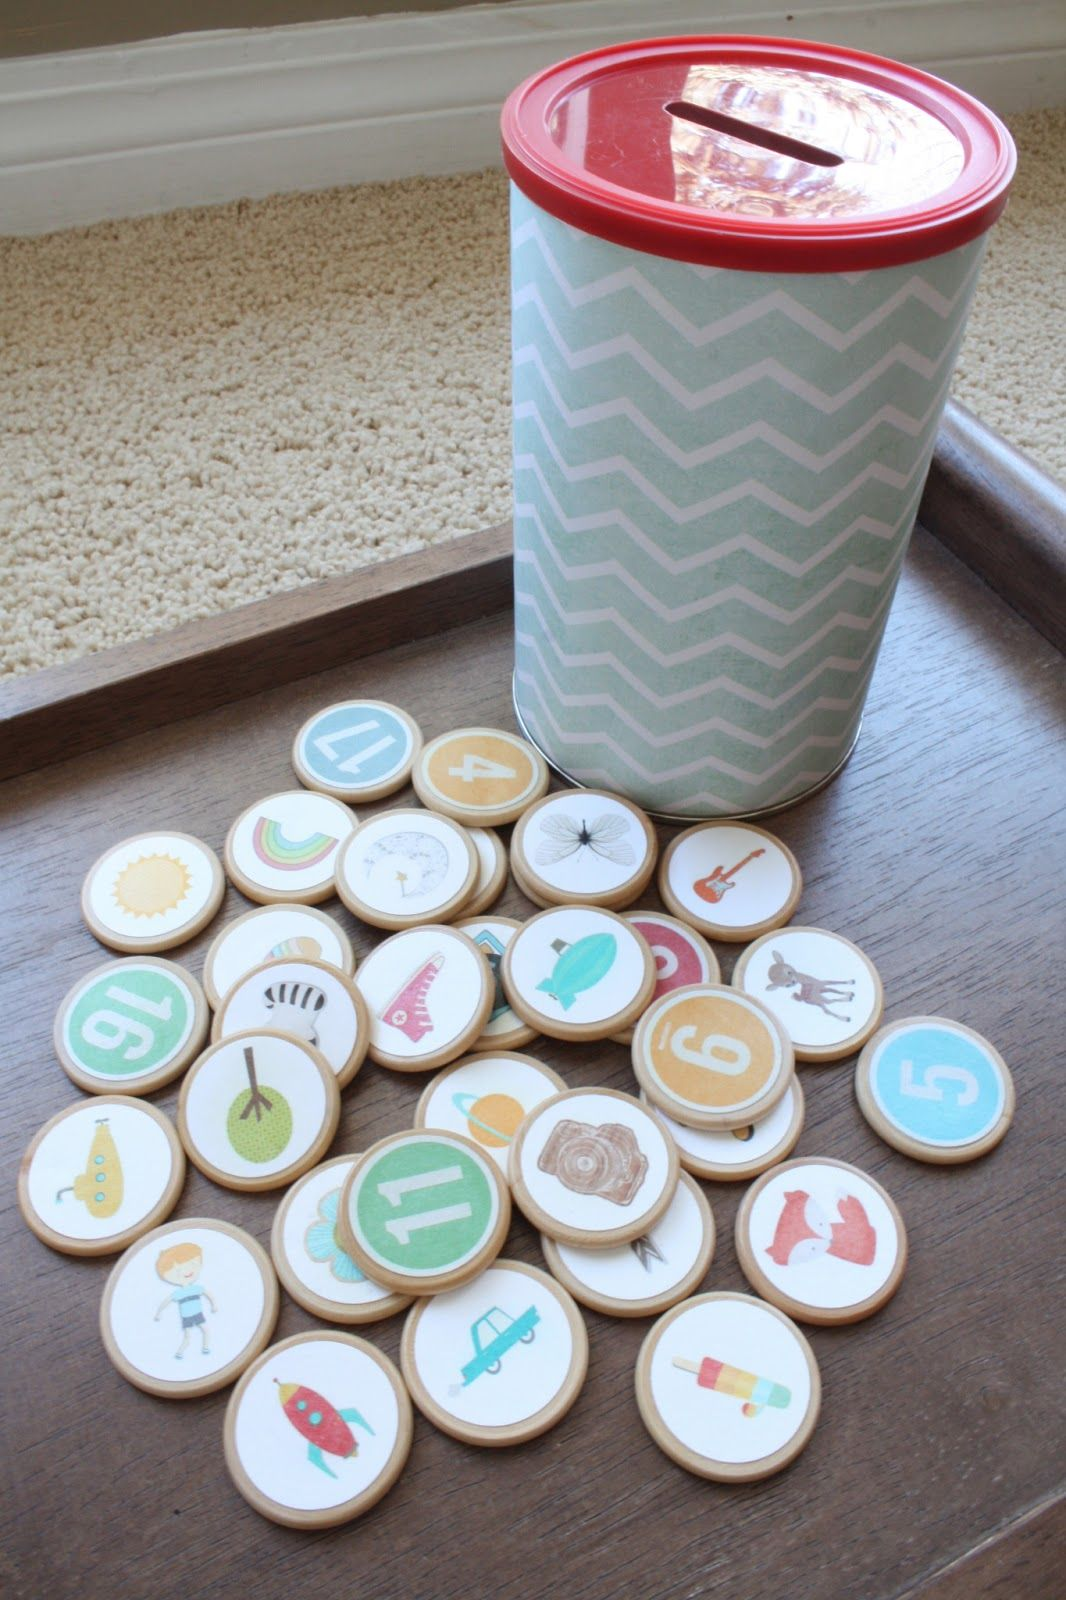 Free printable DIY Story starter kids coins: - perfect for improvisation/composition ideas!